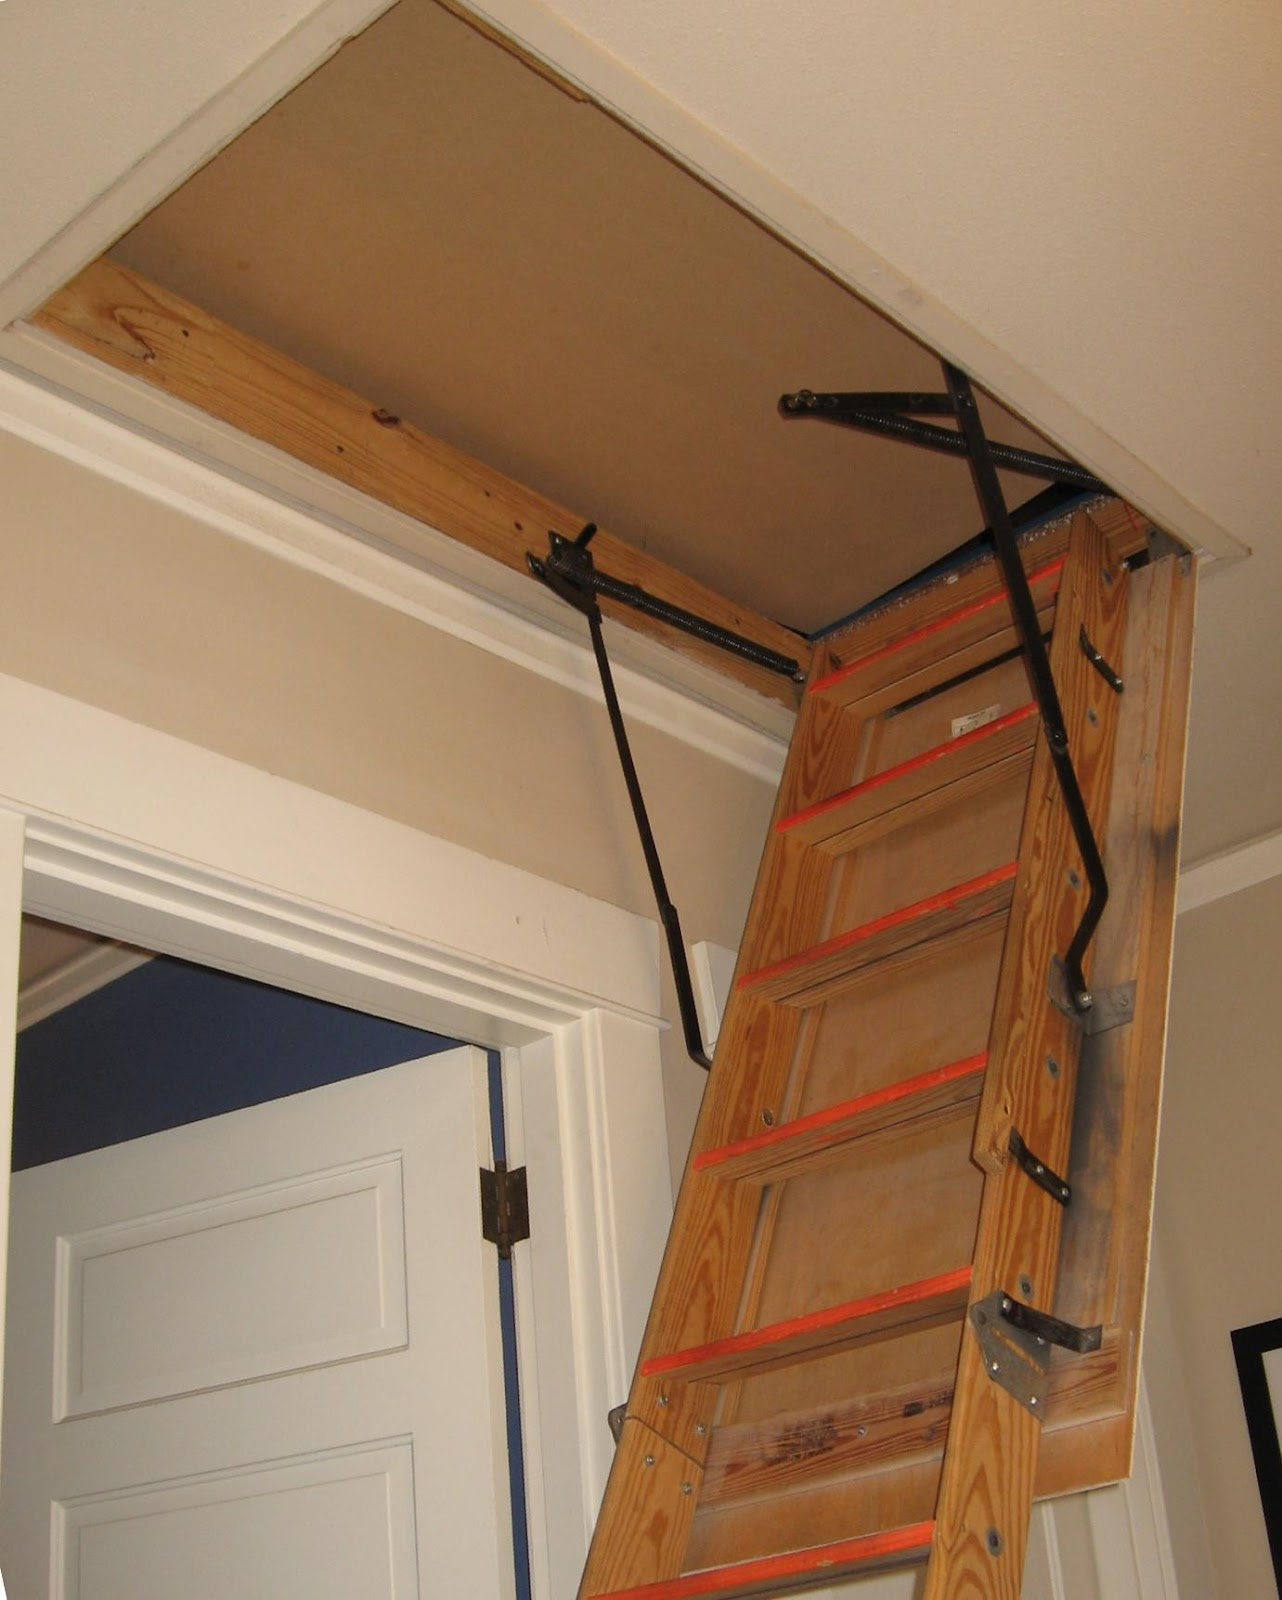 Fakro Attic Ladder Installation Progress